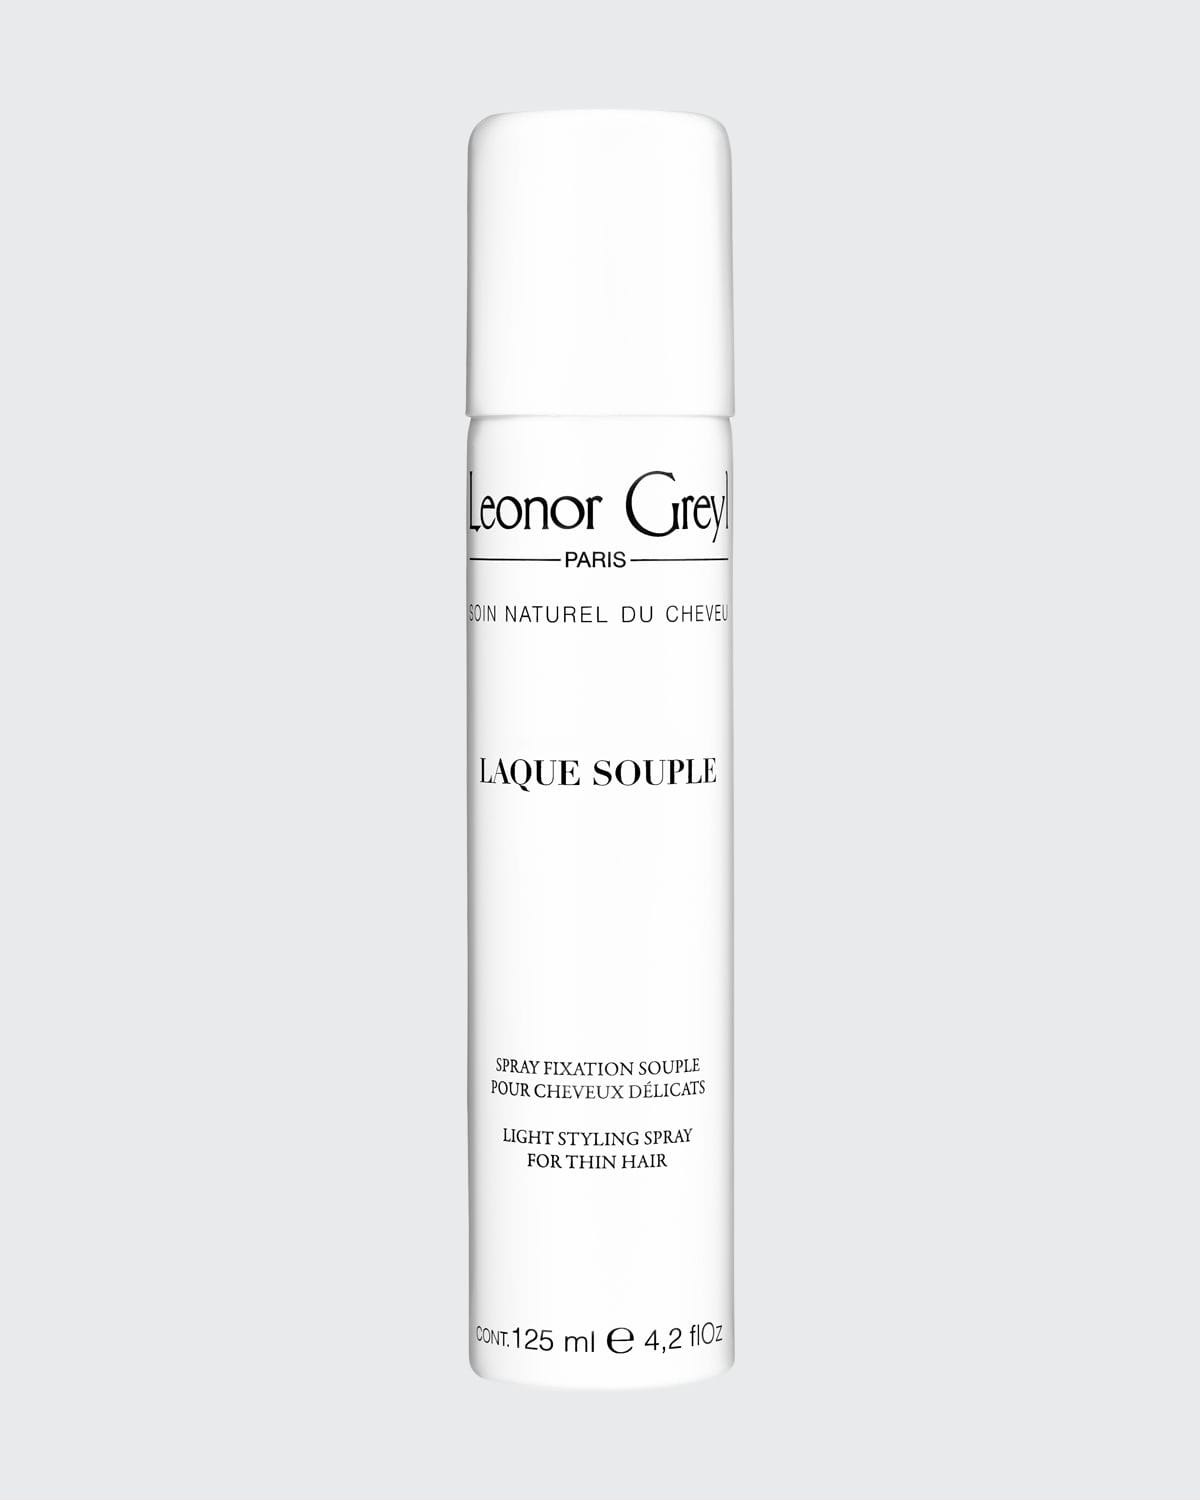 Laque Souple (Light Styling Spray for Thin Hair)